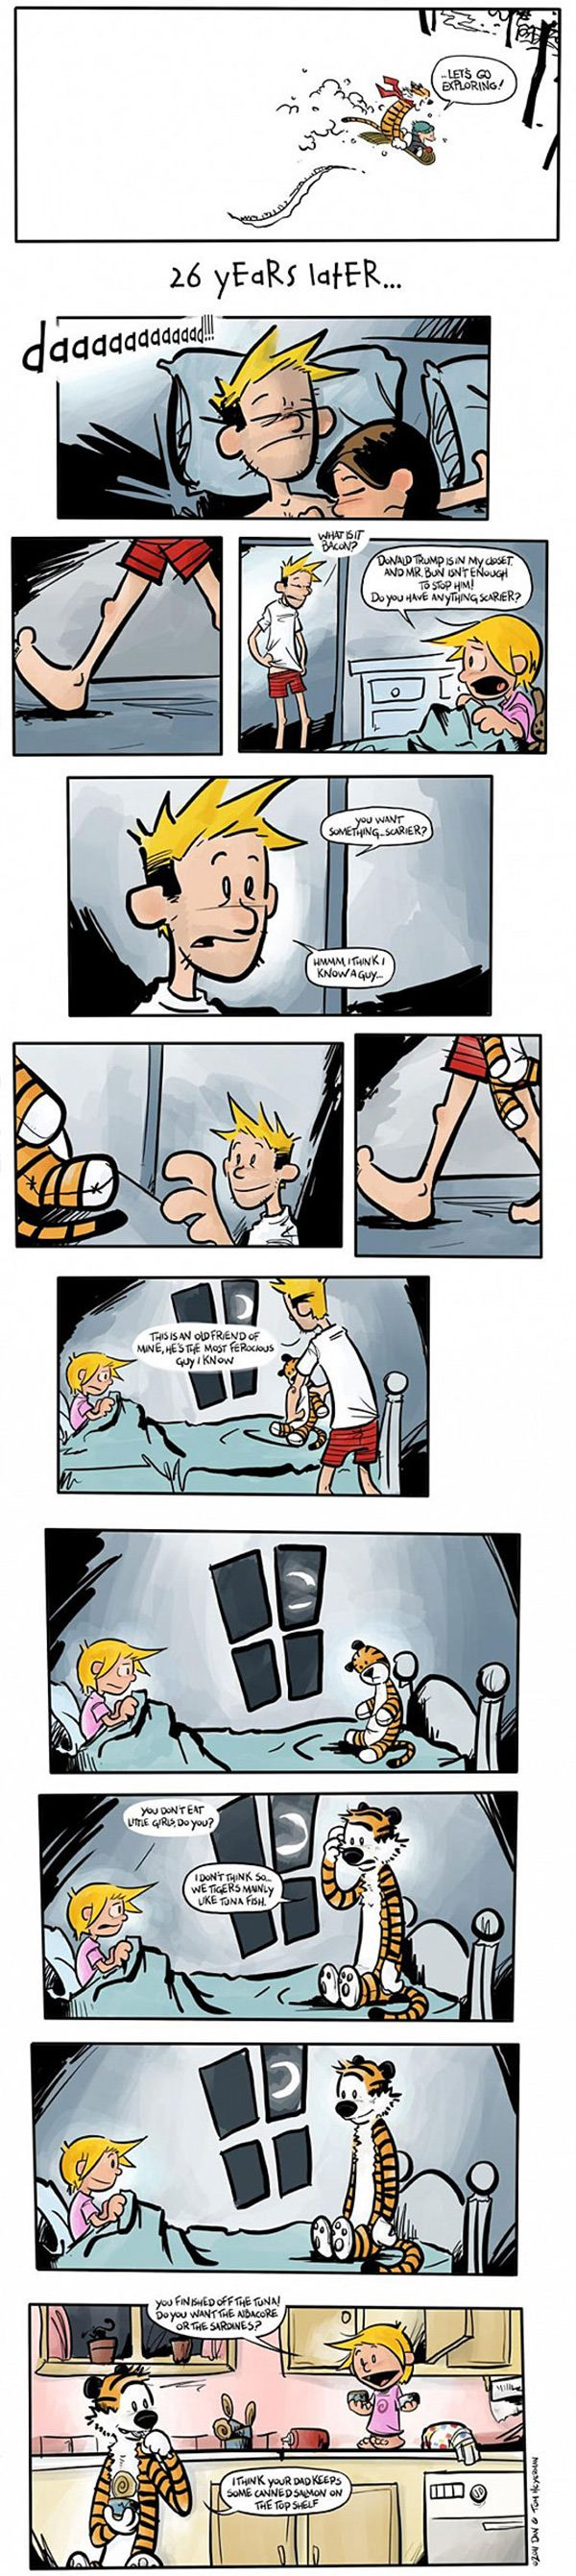 Calvin and Hobbes, the later years...